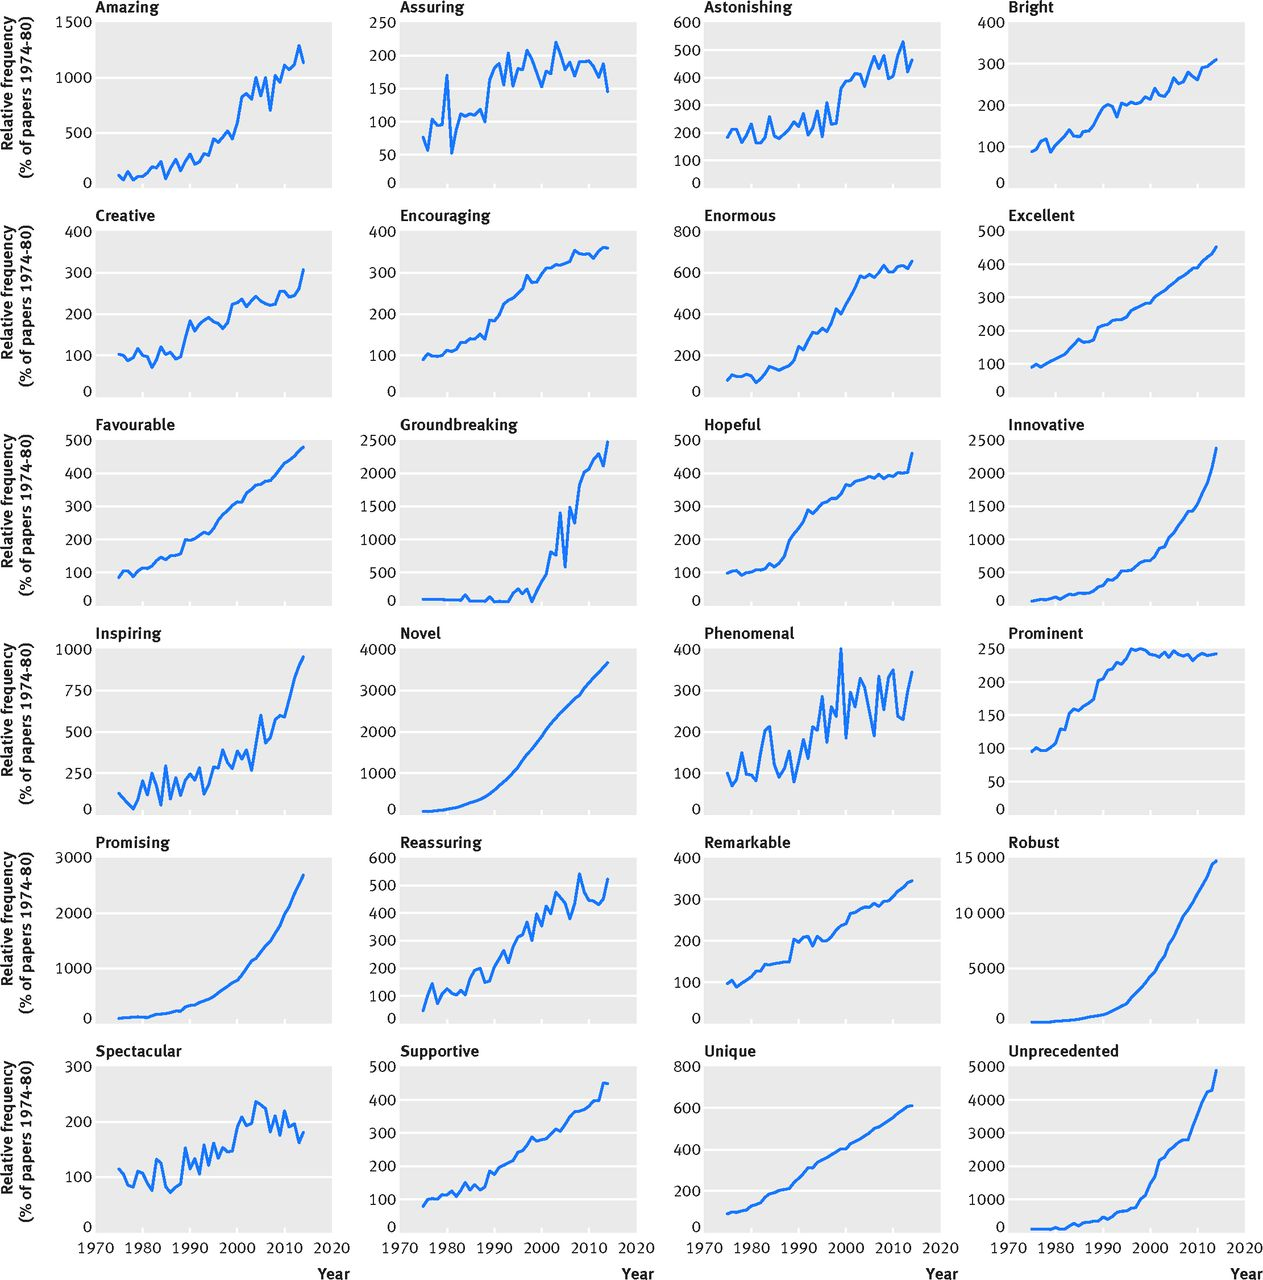 Use Of Positive And Negative Words In Scientific Pubmed Abstracts